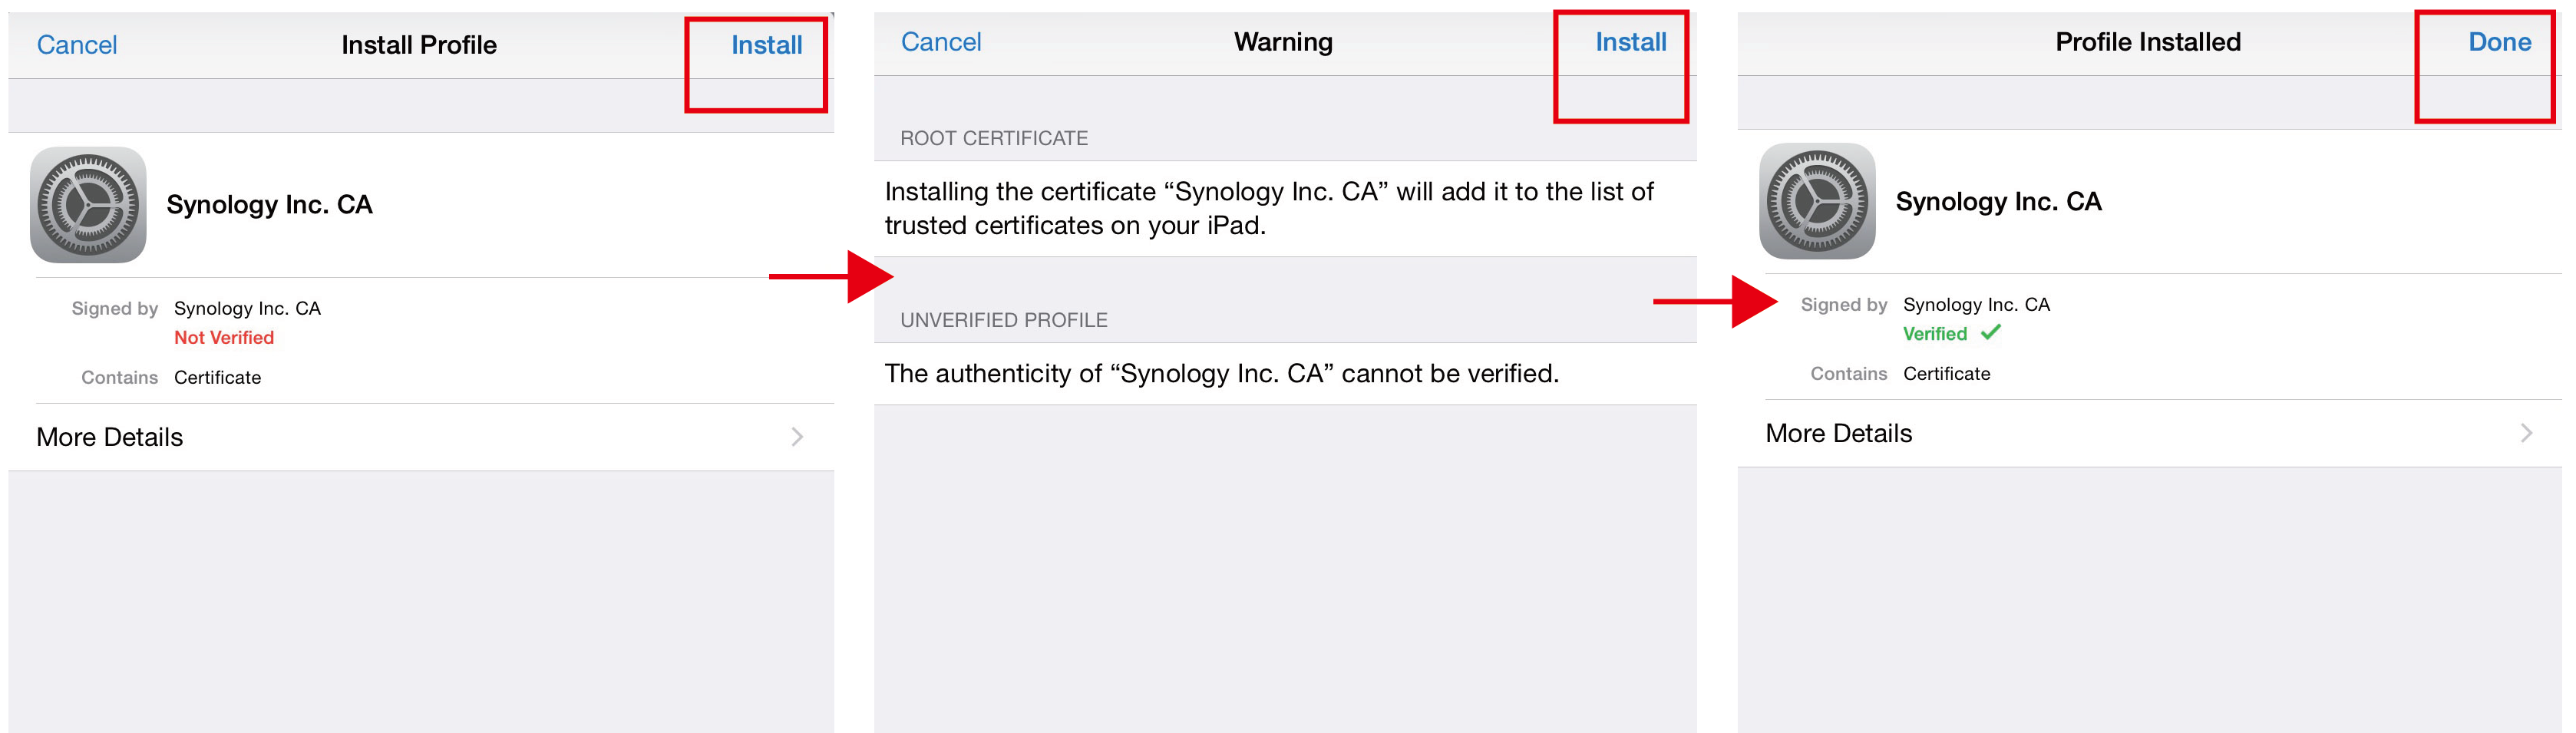 How do I import a certificate from my Synology NAS to my